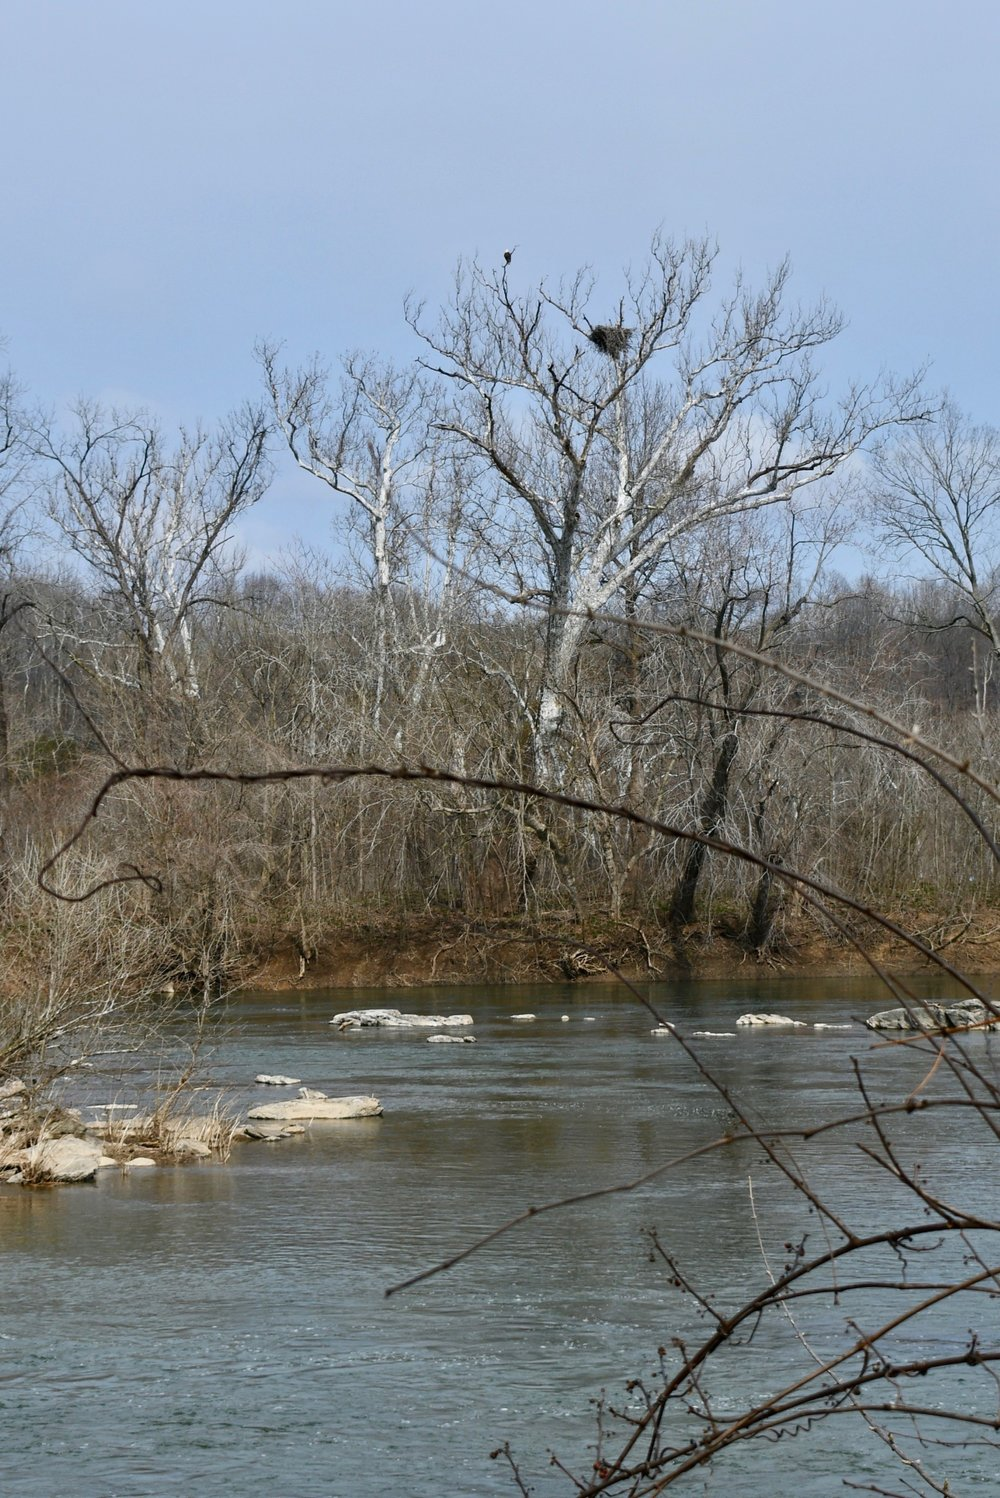 More than 150 species of birds have been seen at Riverbend Park and Great Falls National Park and nearly 100 species have nested there. For a second year, eagles nested in this tree on an island in the Potomac River above the falls. Eagles normally lay one or three eggs per year, but usually lay two off-white eggs about 3-inches wide, which take 35 days to hatch. Young eaglets stay in the nest for 10-12 weeks before fledging.  Photo by Christina Tyler Wenks